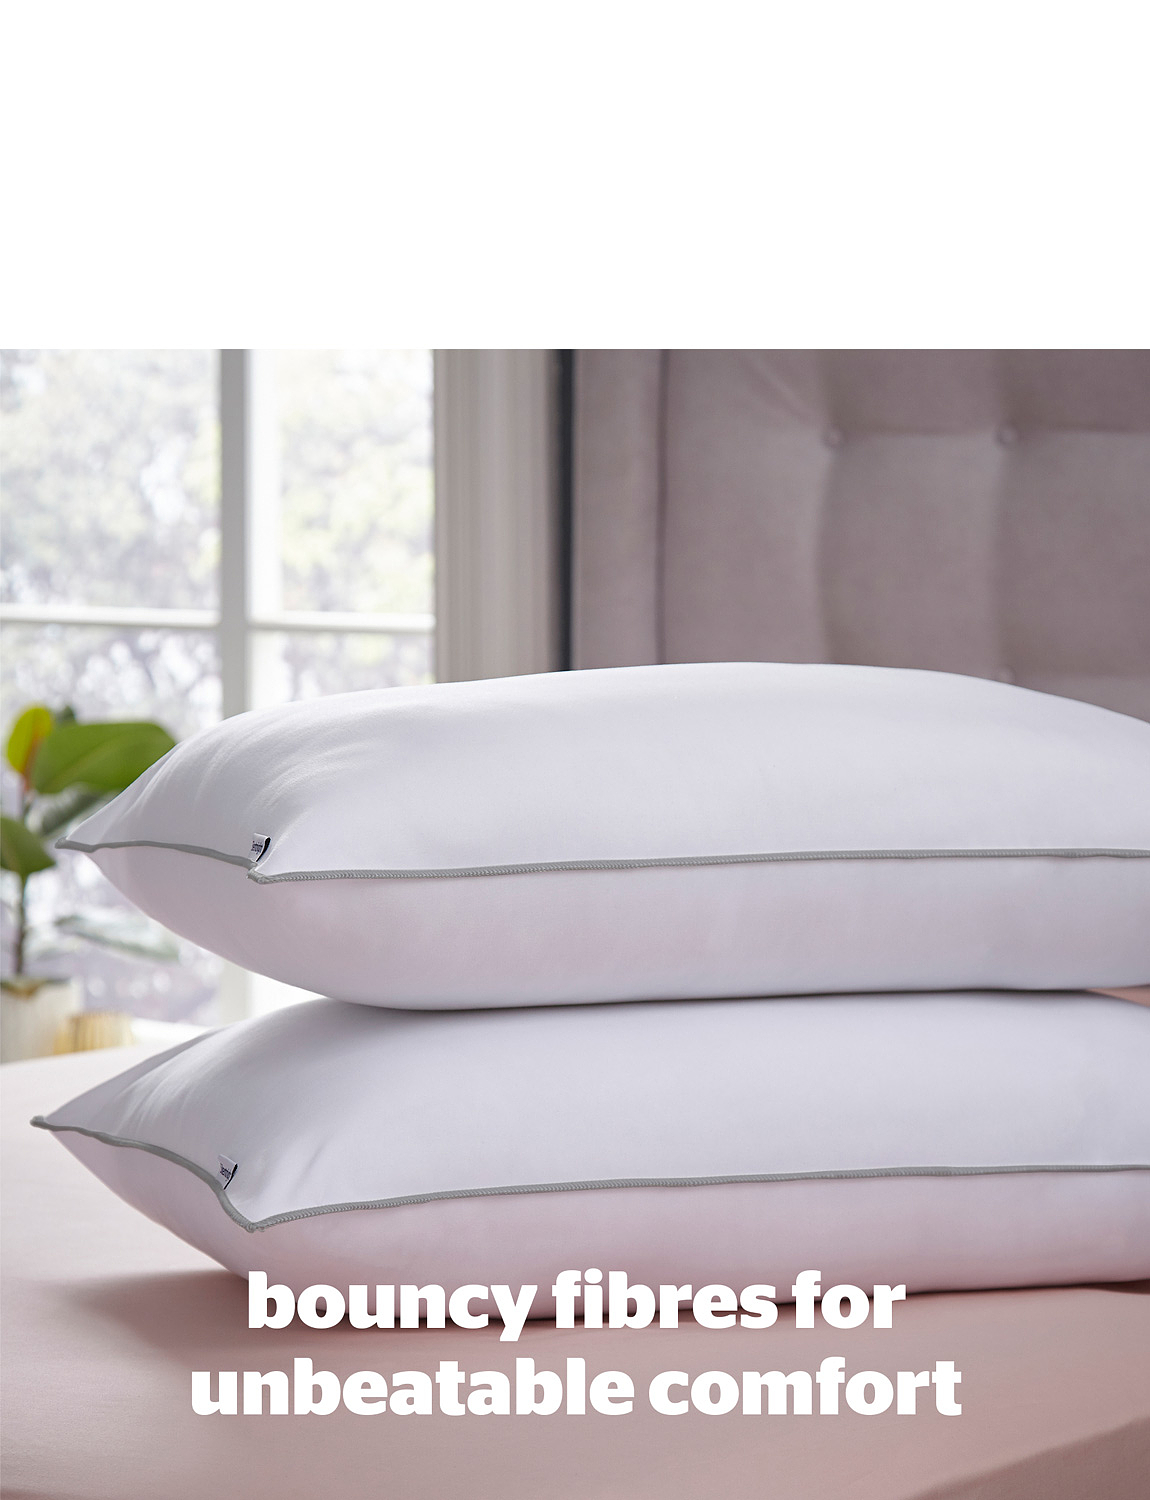 Silentnight Ultra Bounce Pillow